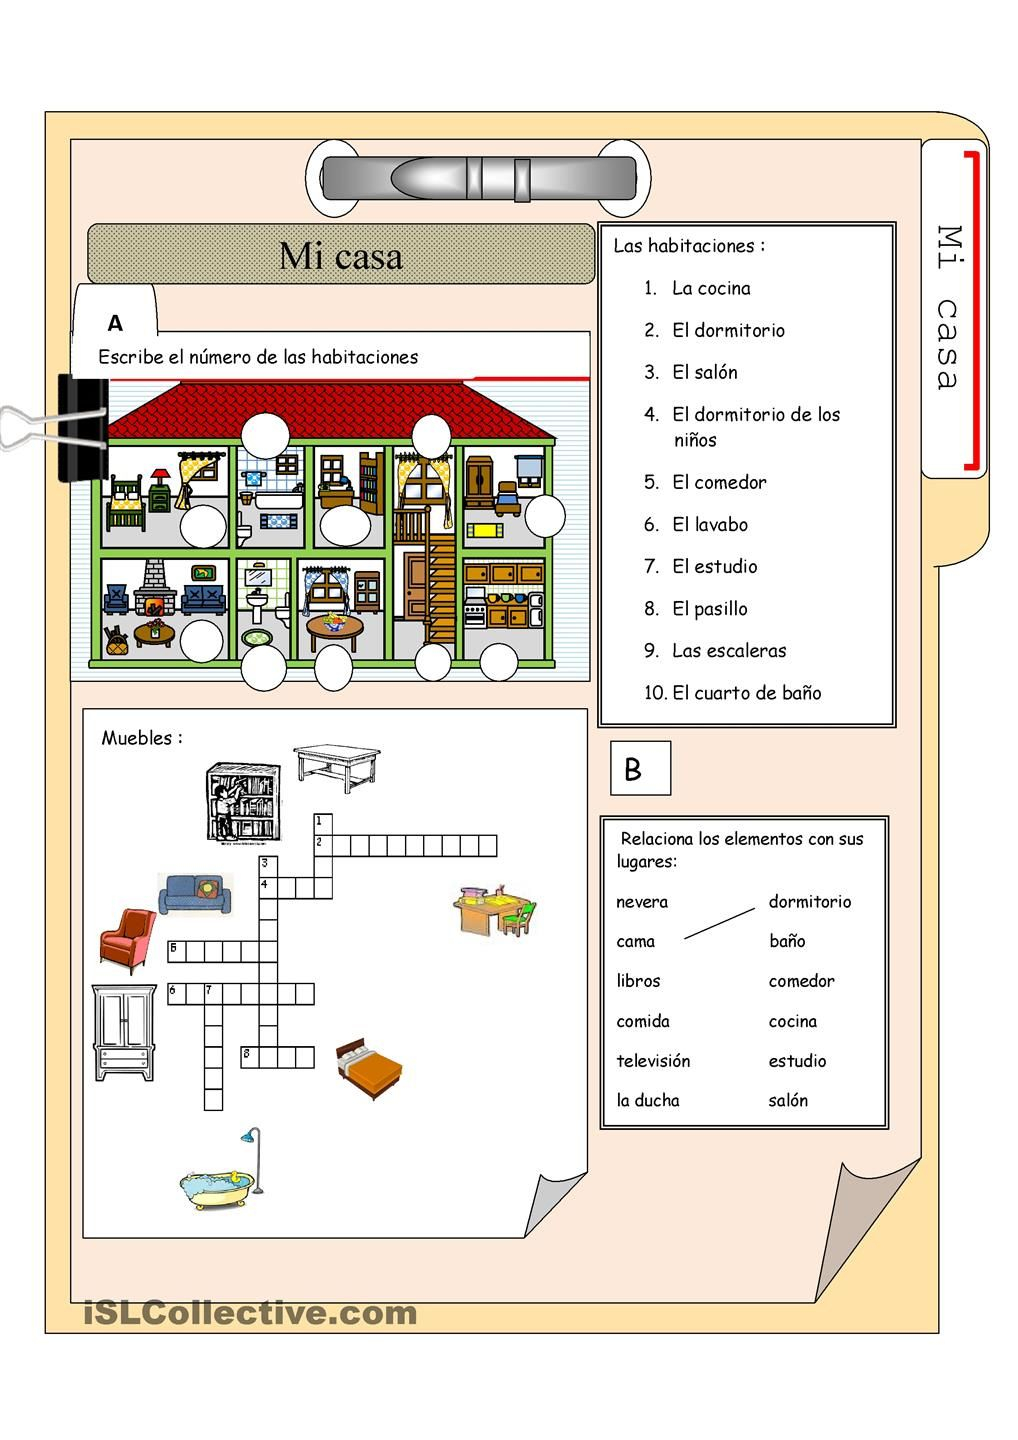 Marvelous Vocabulary For The House And Furniture In Spanish. Free Account Needed To  Download.